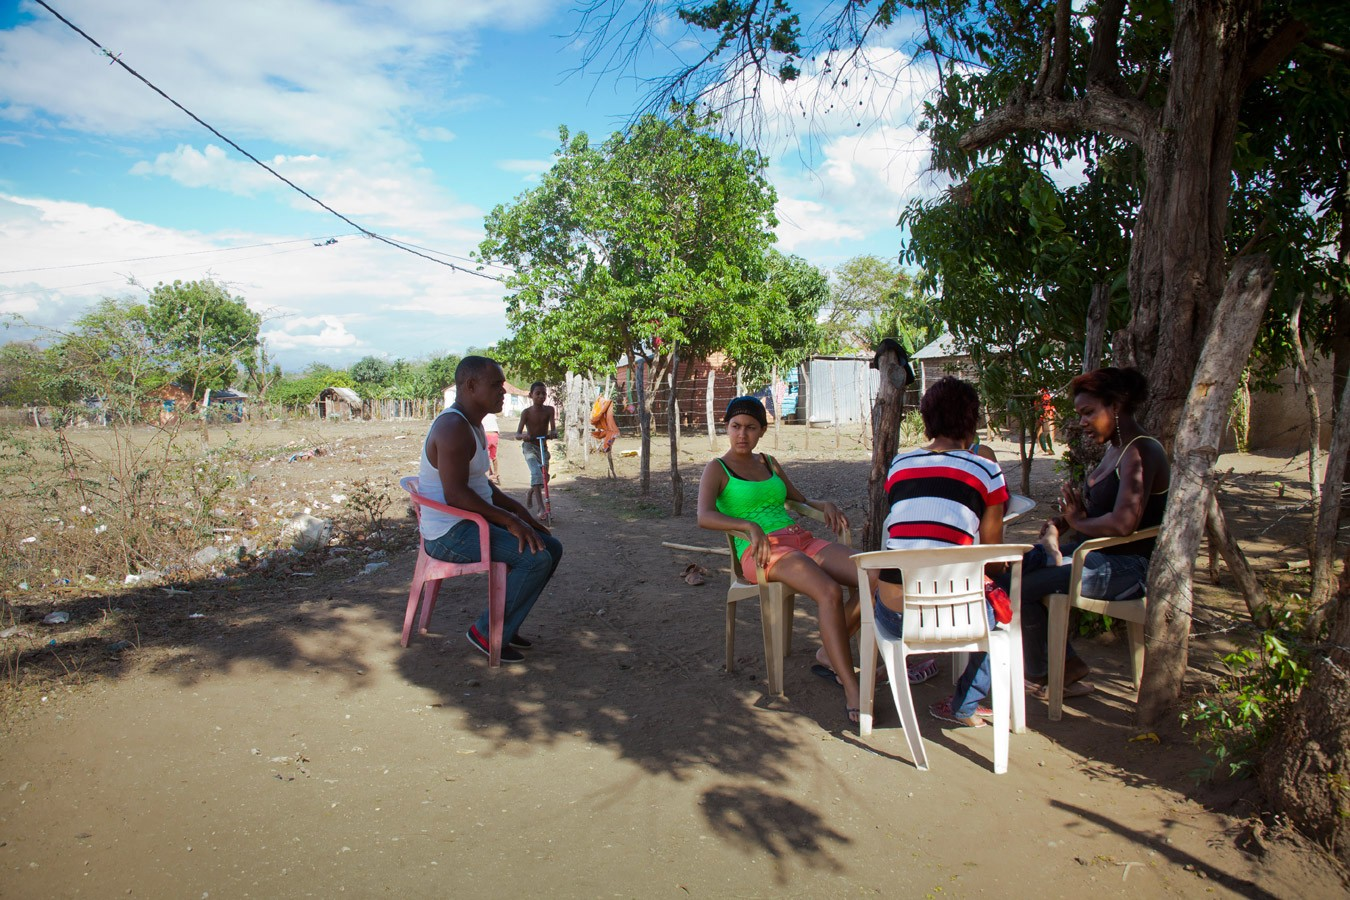 Woman from the Countryside | Mujer de Campo (2014)